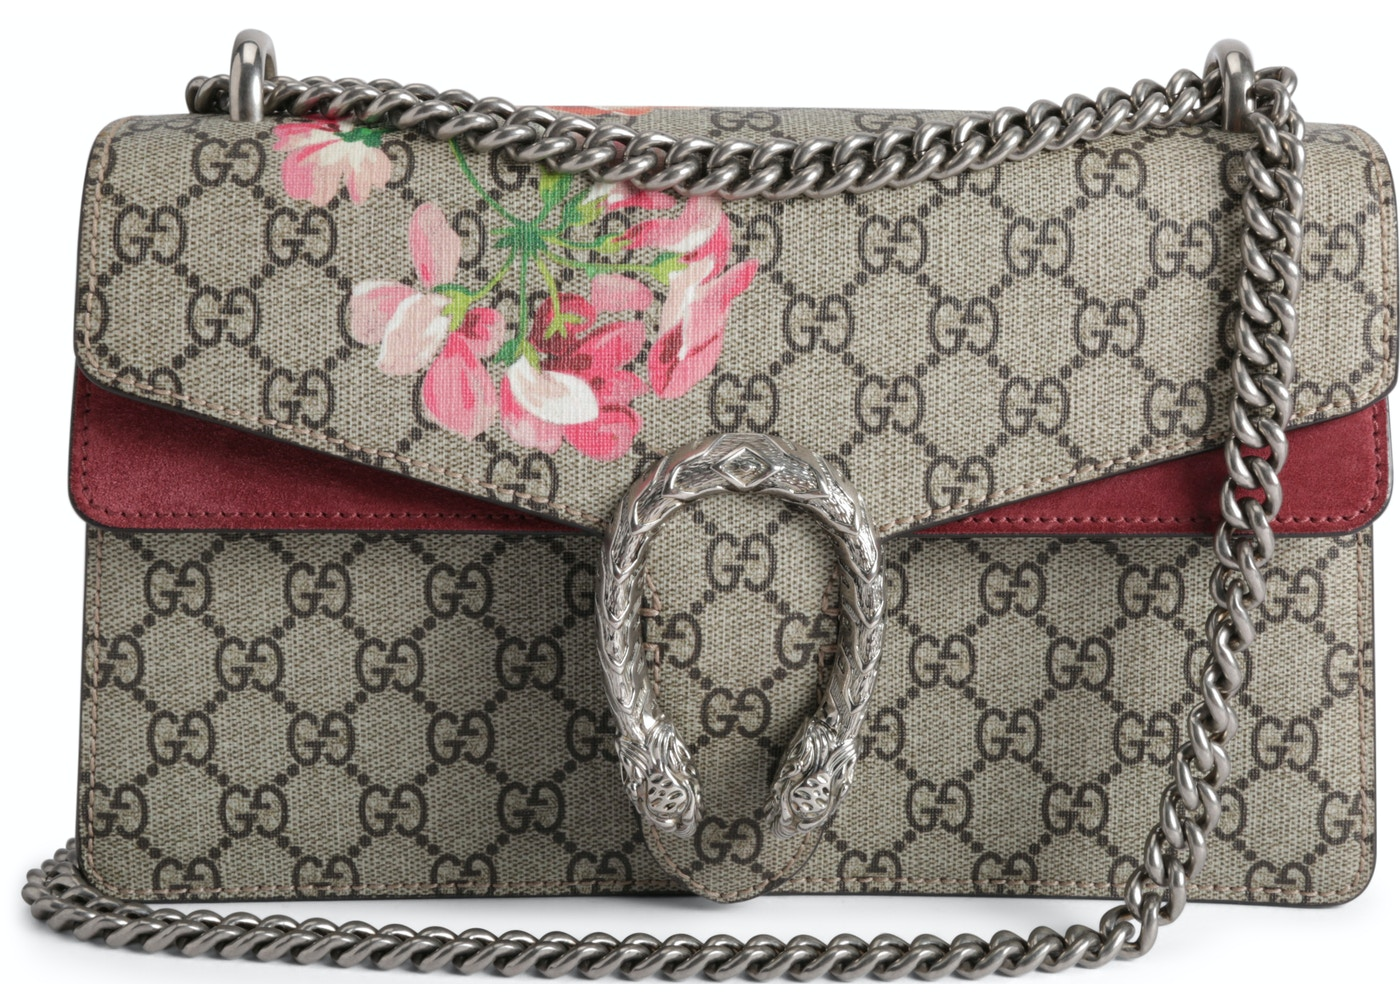 5e07e725ec7cd Gucci Dionysus Shoulder Bag Blooms GG Supreme Small Antique  Rose Green Brown. Blooms GG Supreme Small Antique Rose Green Brown